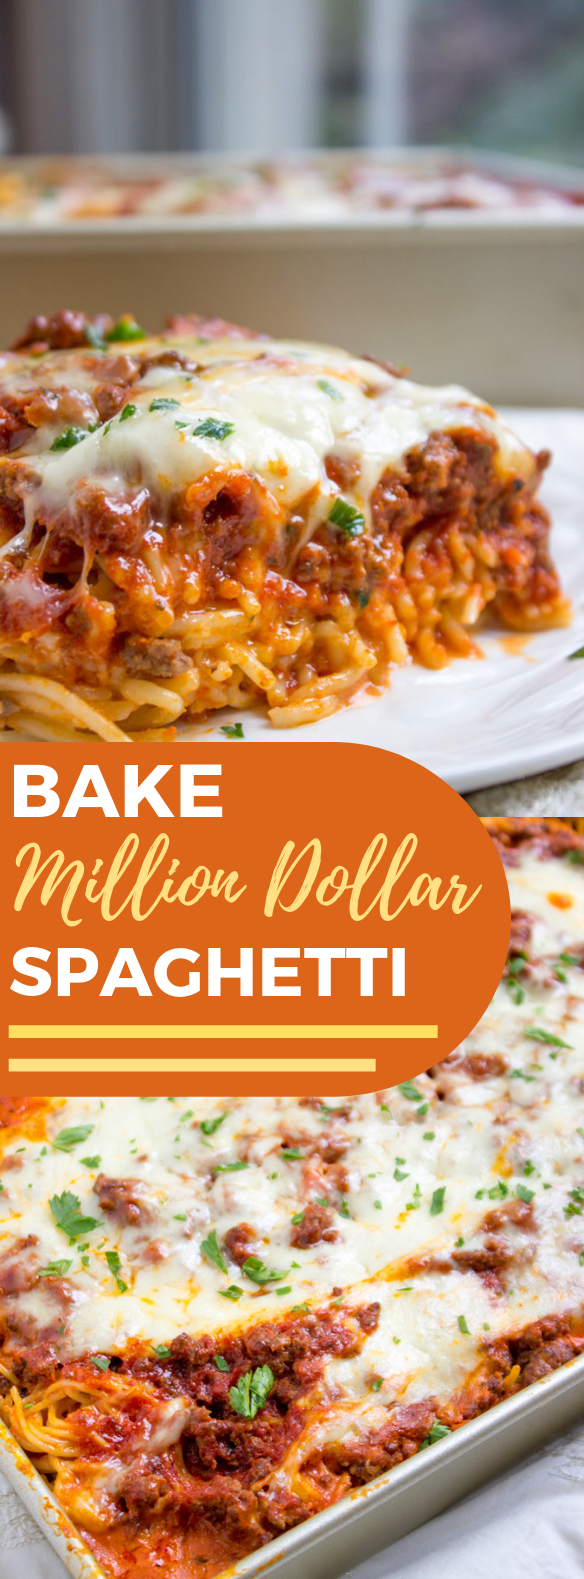 BAKED MILLION DOLLAR SPAGHETTI #Dinner #Recipe